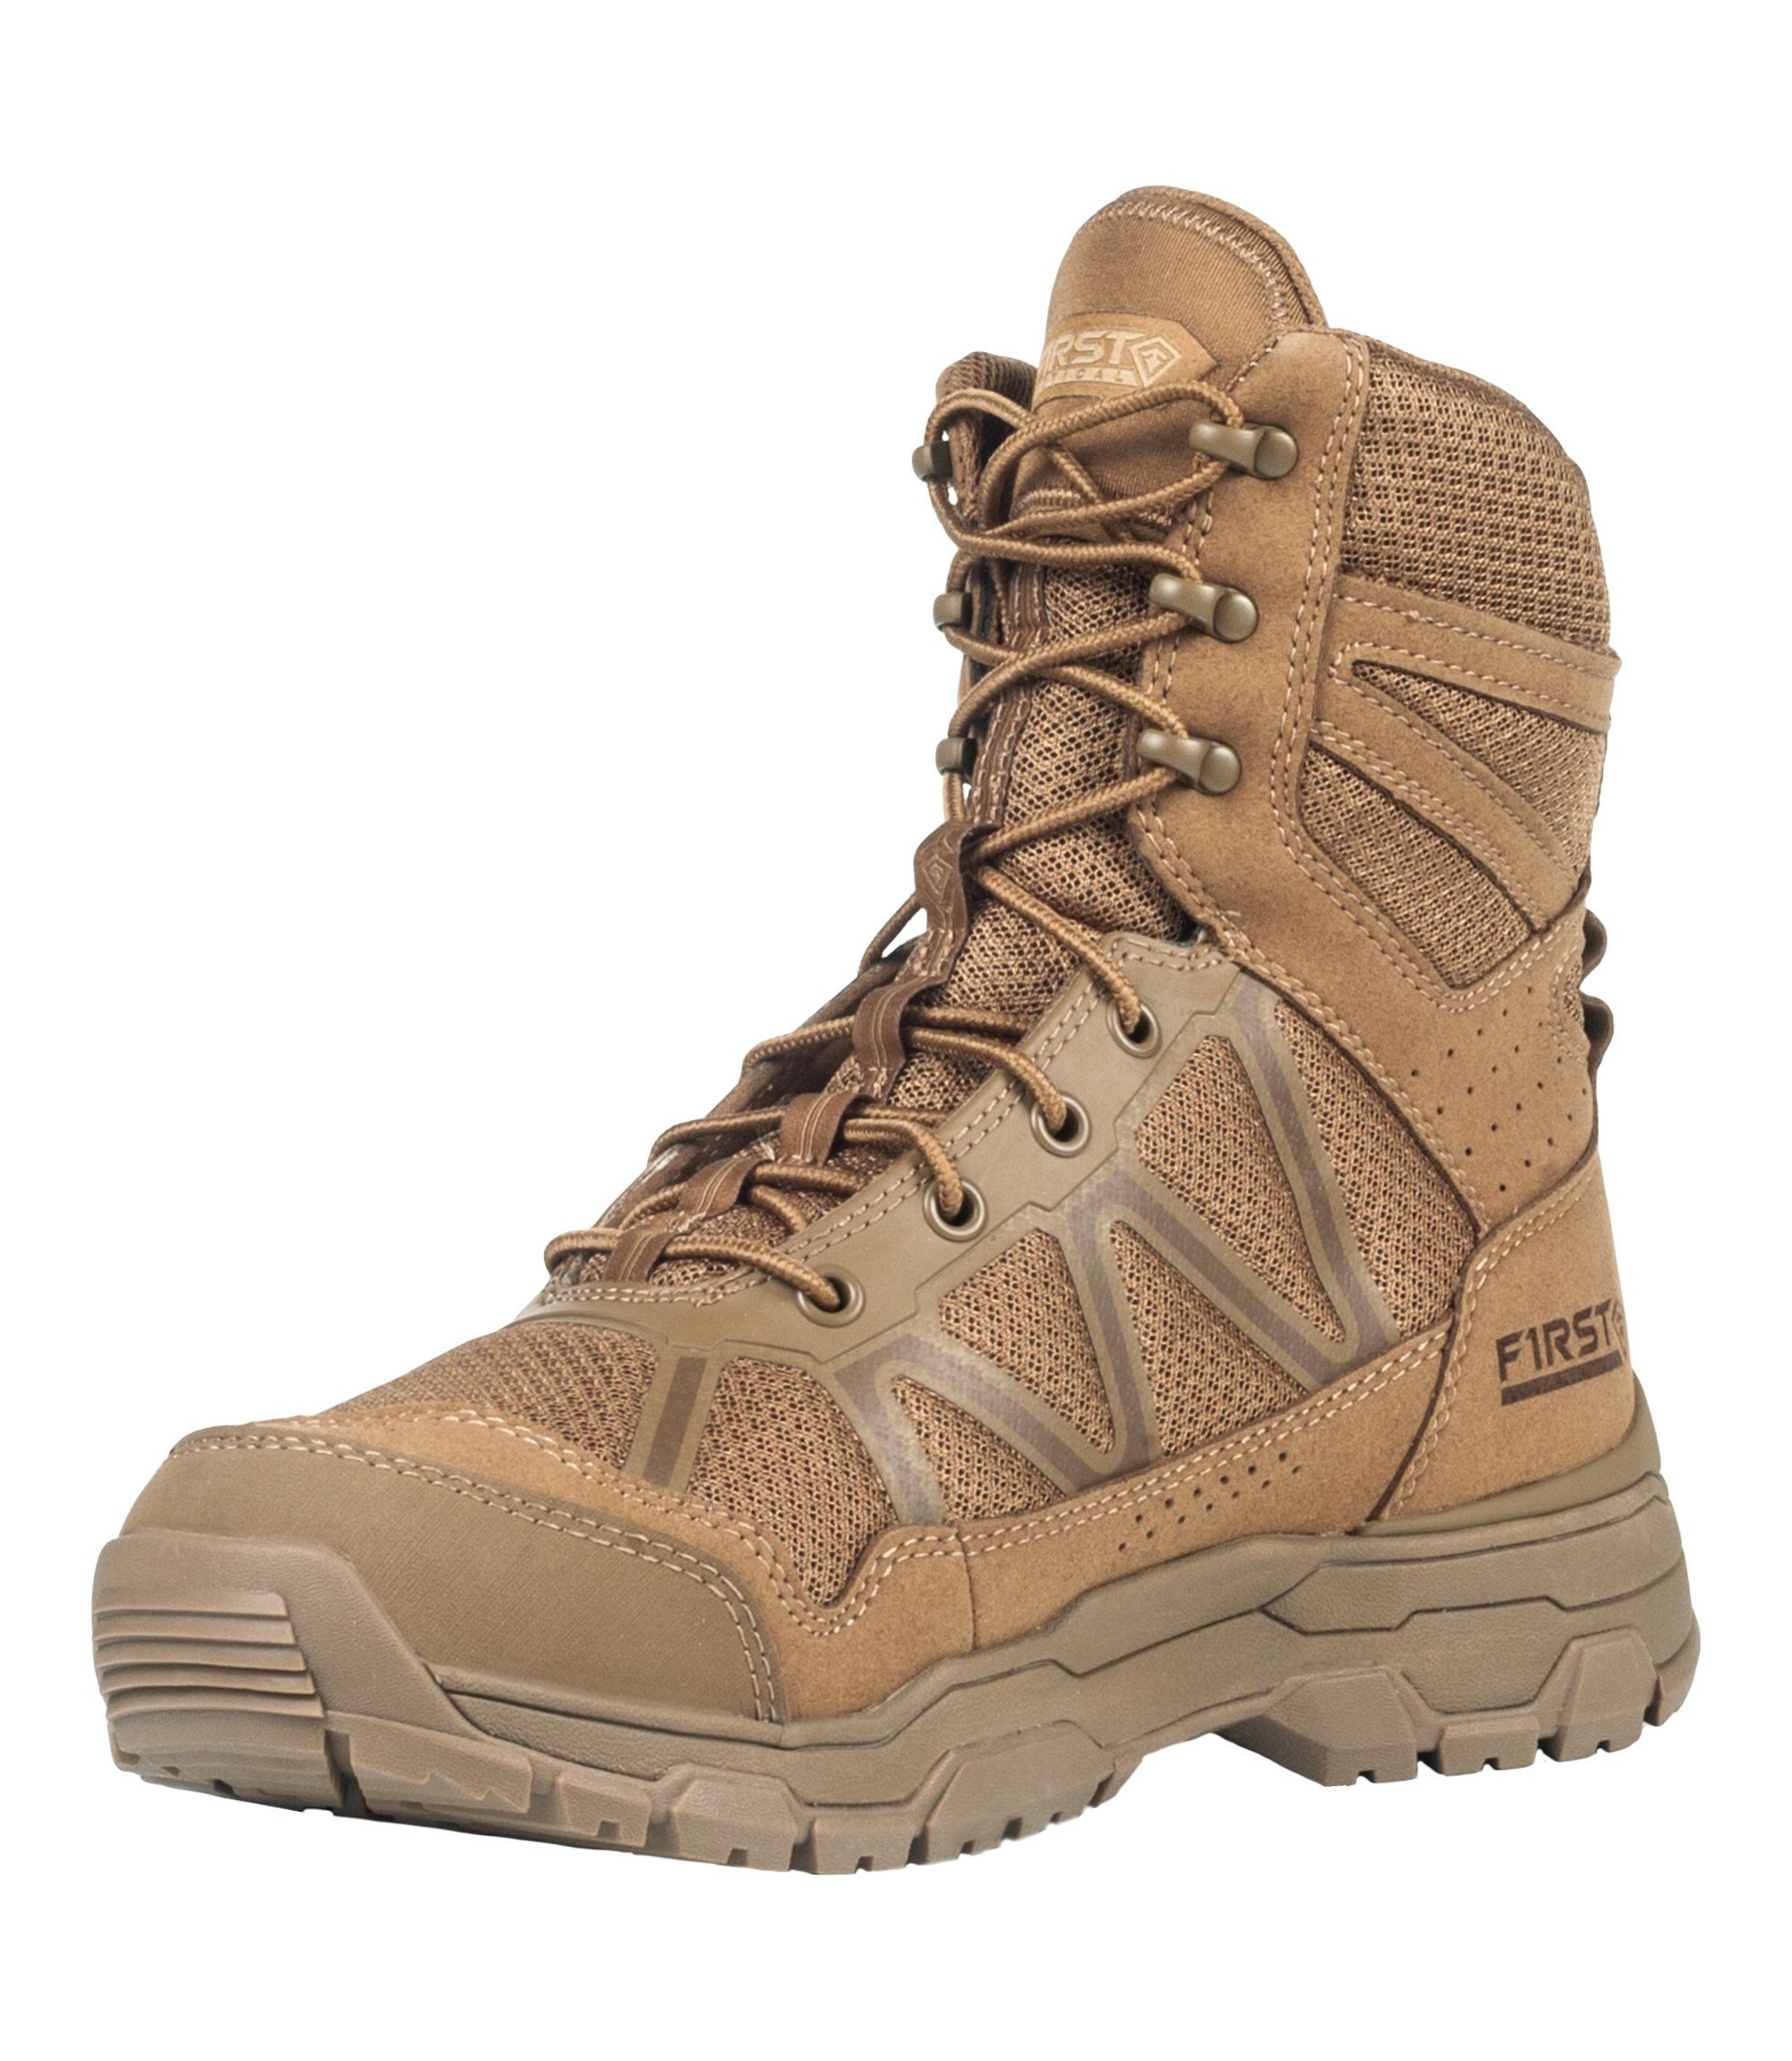 """BUTY FIRST TACTICAL M'S 7"""" OPERATOR BOOT COYOTE 165010 - Rozmiar (A) 41"""